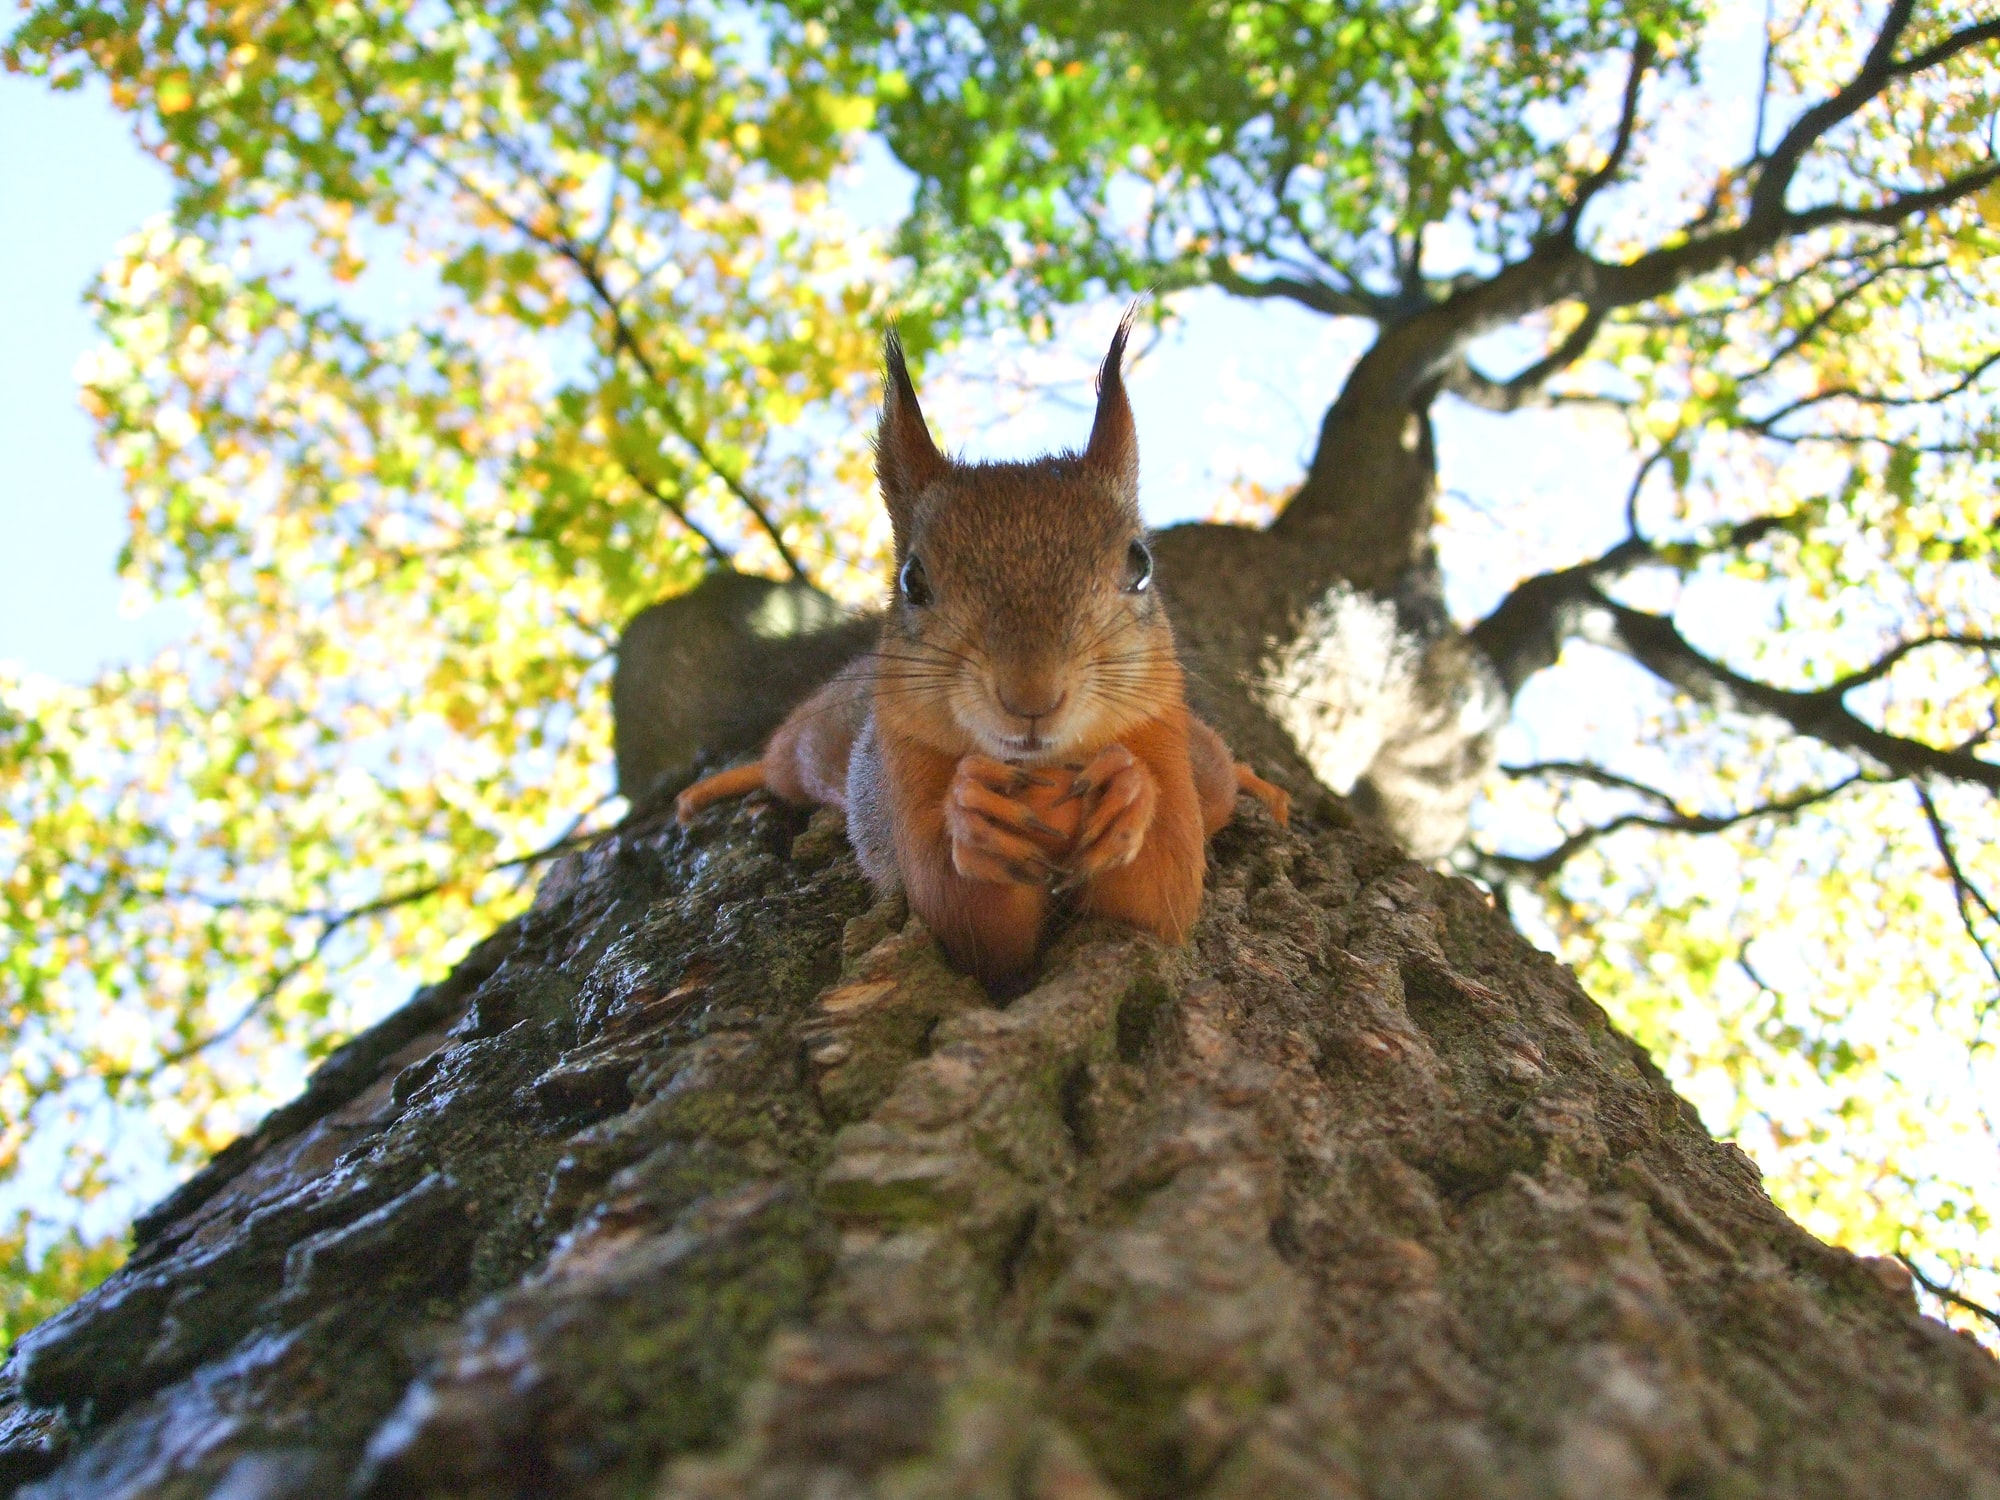 funny picture of a squirrel in a tree